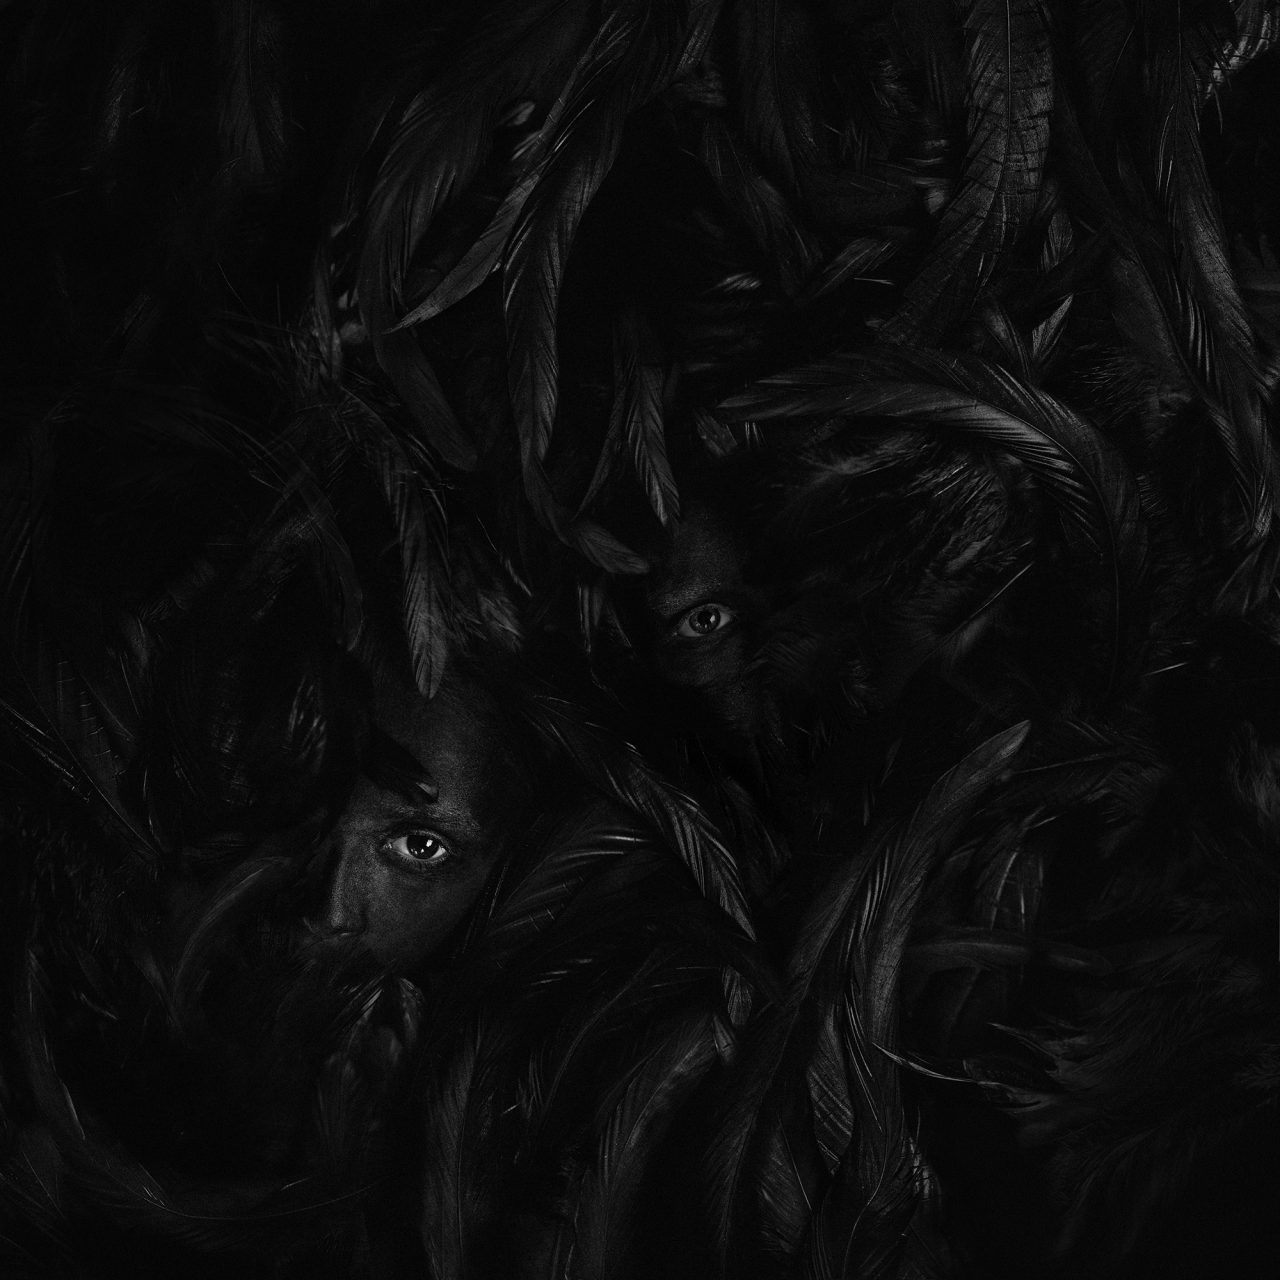 """Black faces lost in a sea of black feathers. Photograph by Greta Do called """"Silence"""""""""""